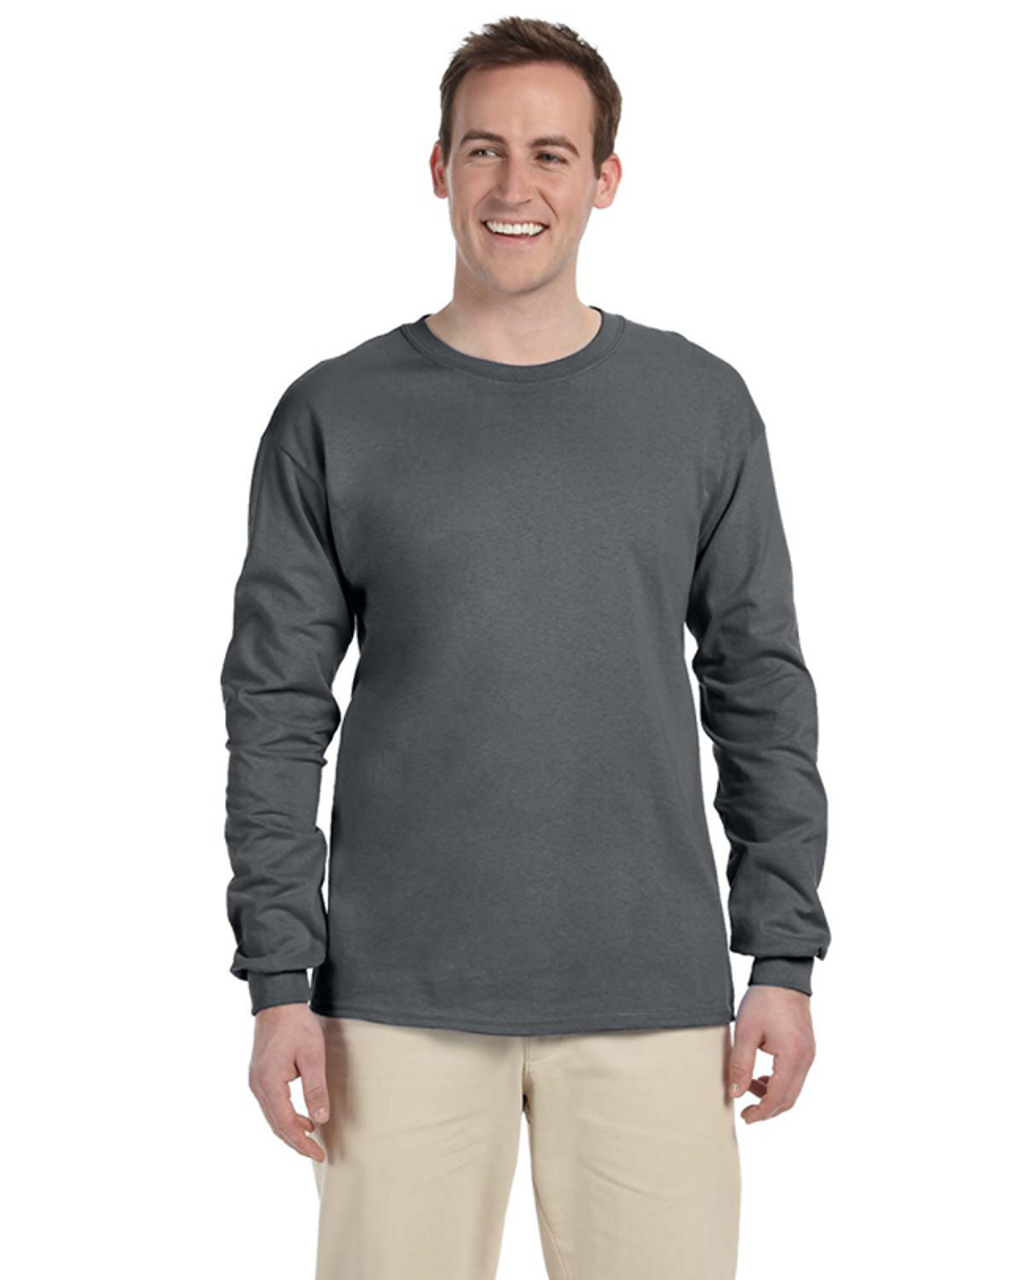 Charcoal Grey - 4930 Fruit of the Loom 100% Heavy Cotton HD® Long-Sleeve T-Shirt | Blankclothing.ca